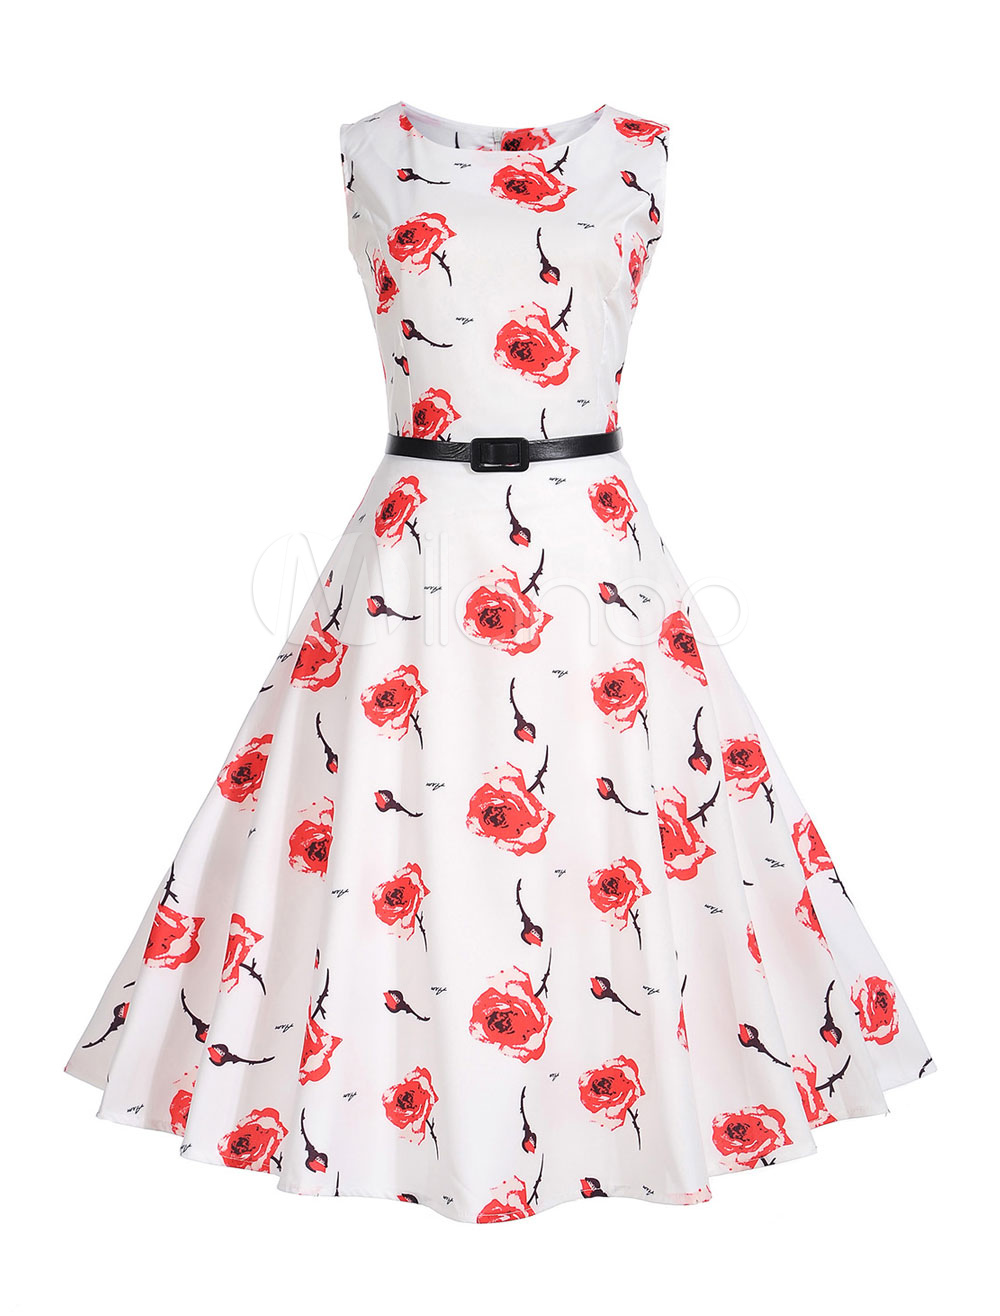 Buy White Vintage Dress Women Round Neck Sleeveless Rose Print 1950s A Line Floral Dresses for $19.99 in Milanoo store